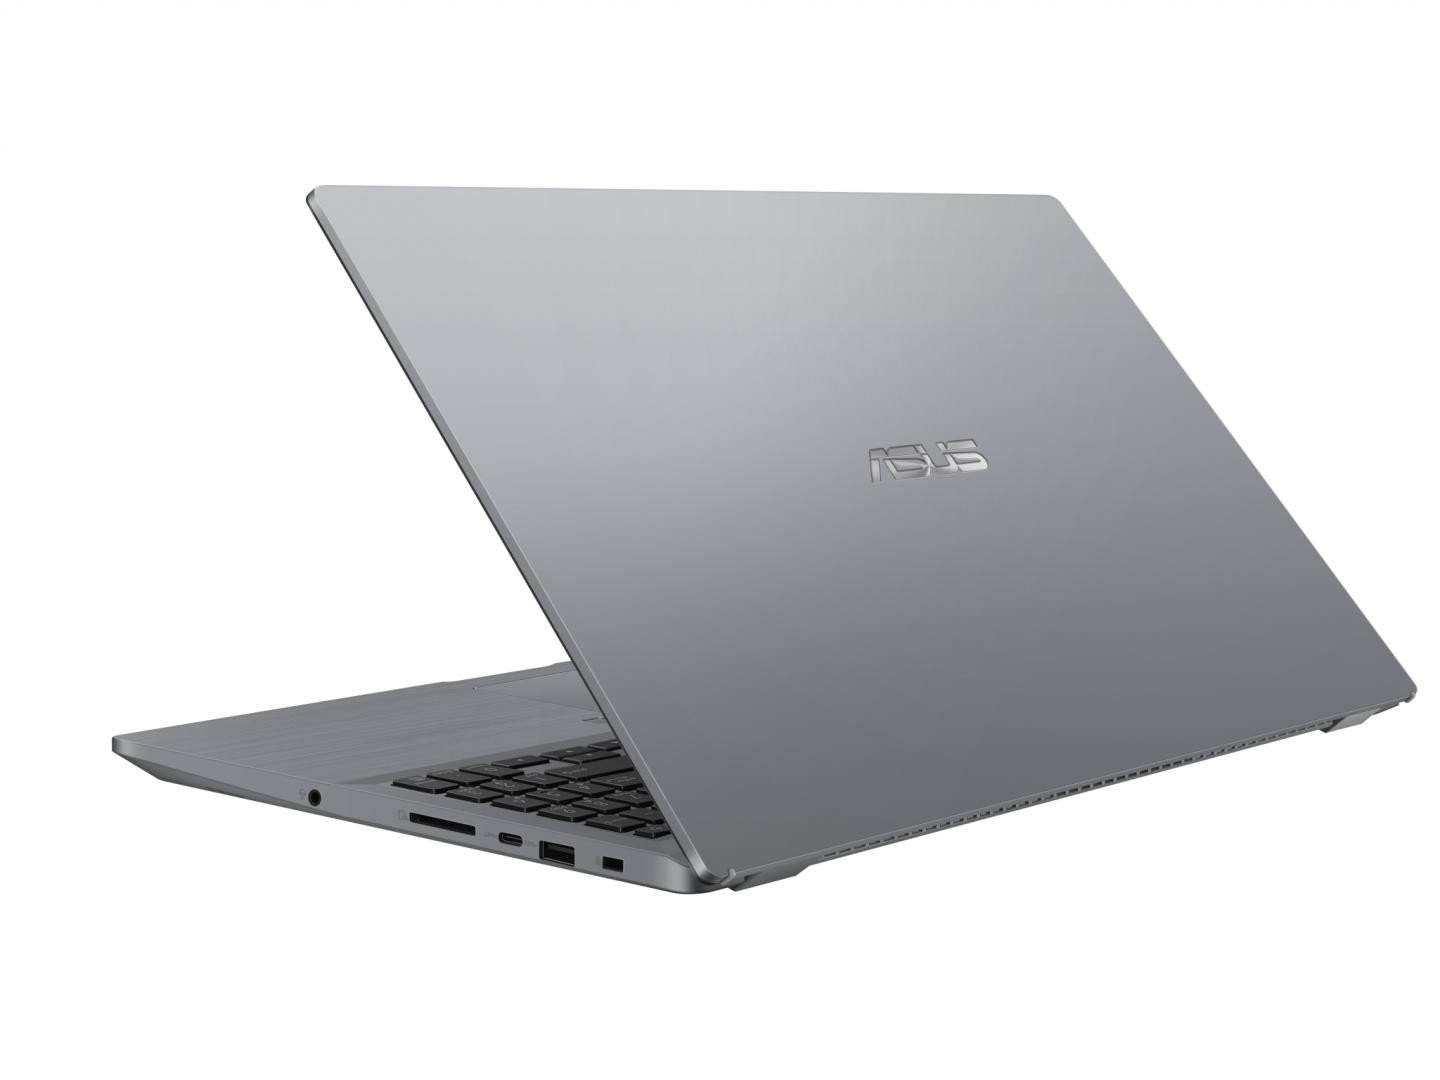 Laptop Business ASUS ExpertBook P3540FA-BR1336, 15.6-inch, HD (1366 x 768) 16:9, LCD, Anti-glare display, Intel® Core™ i5-8265U Processor 1.6 GHz (6M Cache, up to 3.9 GHz, 4 cores), Intel® UHD Graphics 620, 8GB DDR4 on board, 512GB M.2 NVMe™ PCIe® 3.0 SSD, Wi-Fi 5(802.11ac) +Bluetooth 4.2 (Dual - imaginea 4